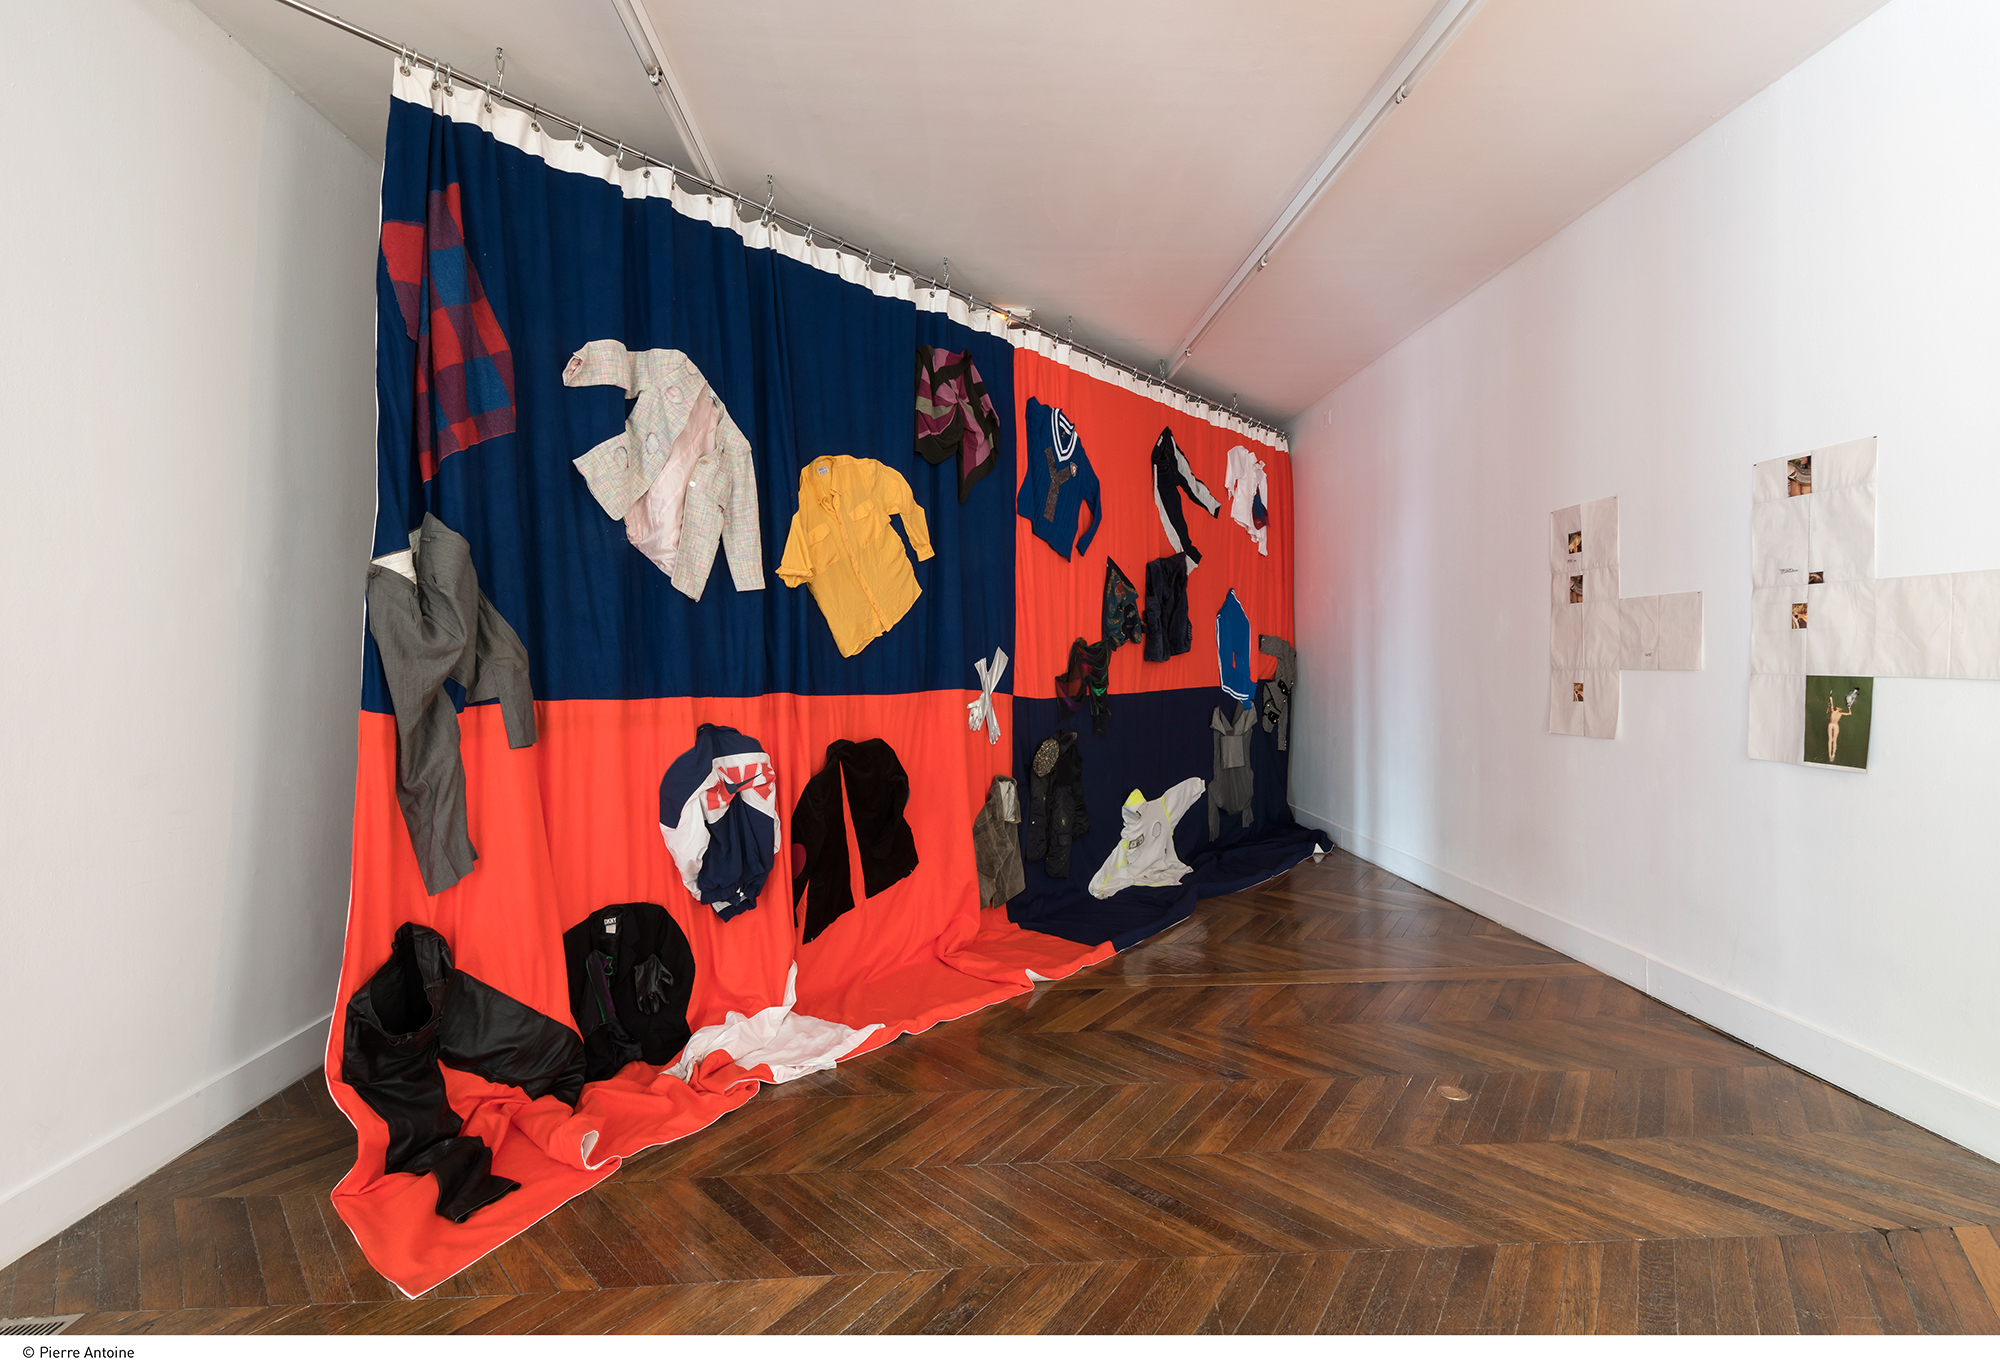 Liv Schulman  Que faire ?, 2017 Textiles  4 x 7,60 m Courtesy de l'artiste  Production La Galerie, centre d'art contemporain de Noisy-le-Sec Photo Pierre Antoine